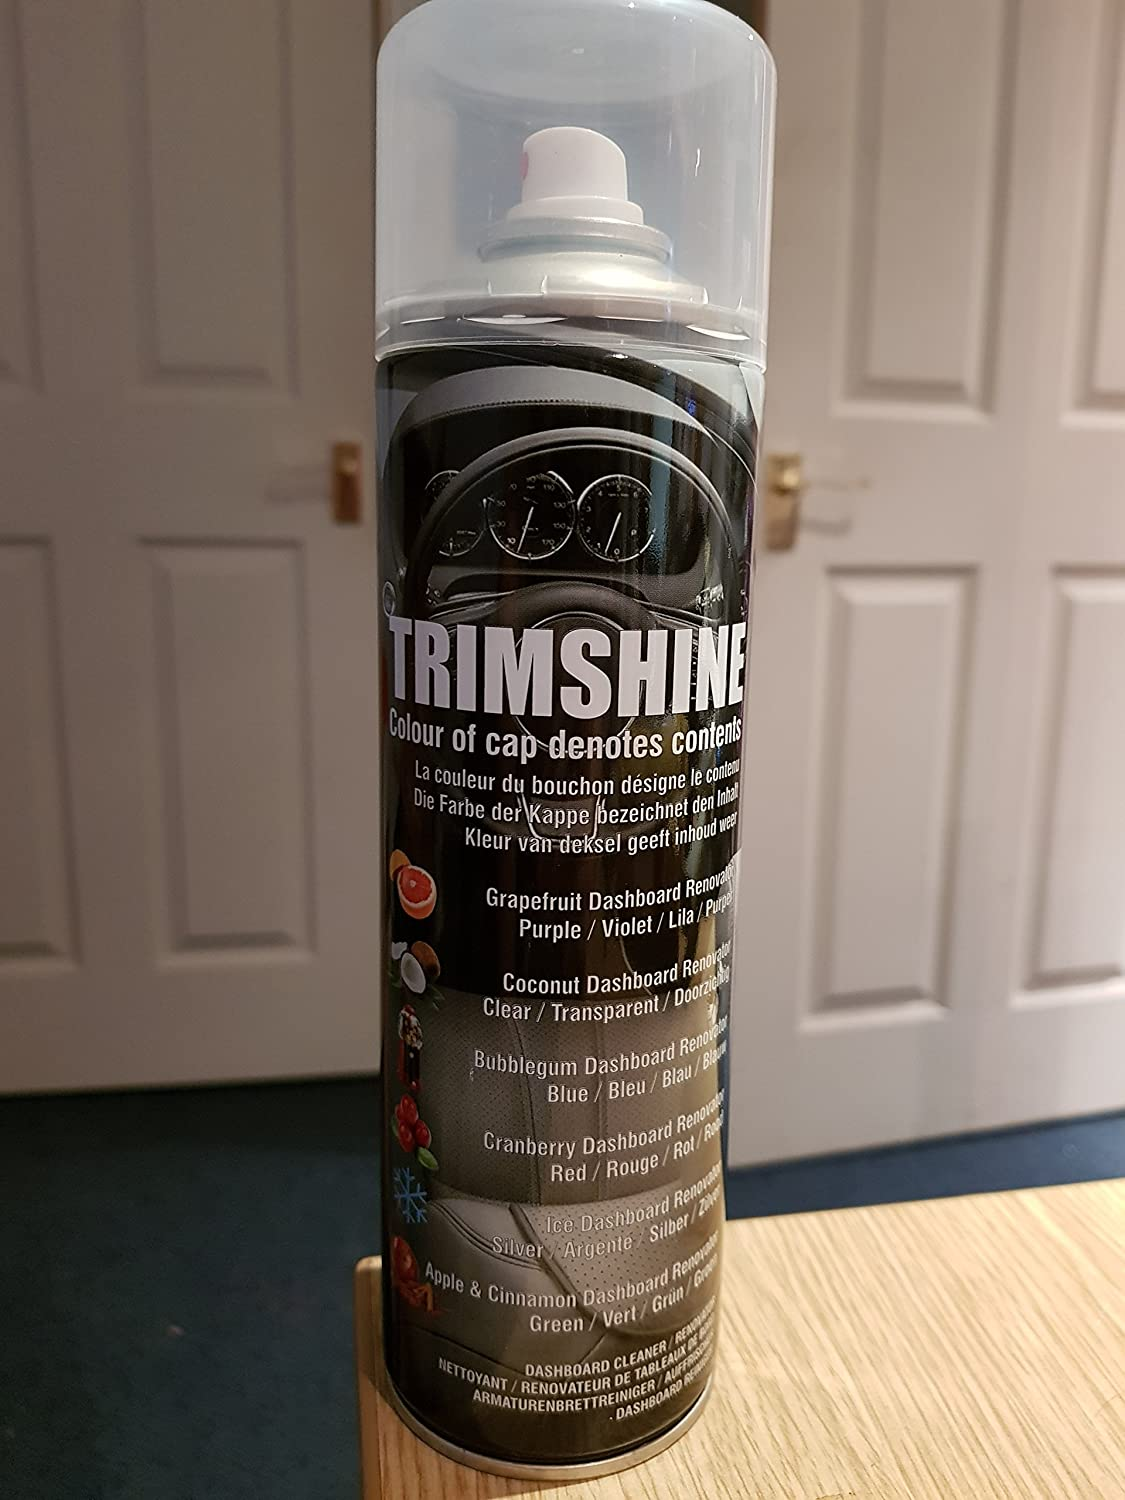 Scented Trimshine Dashboard, Cockpit, Rubber, Plastic and Vinyl Cleaner for Cars, Vans, Buses, Coaches - Coconut Aztec